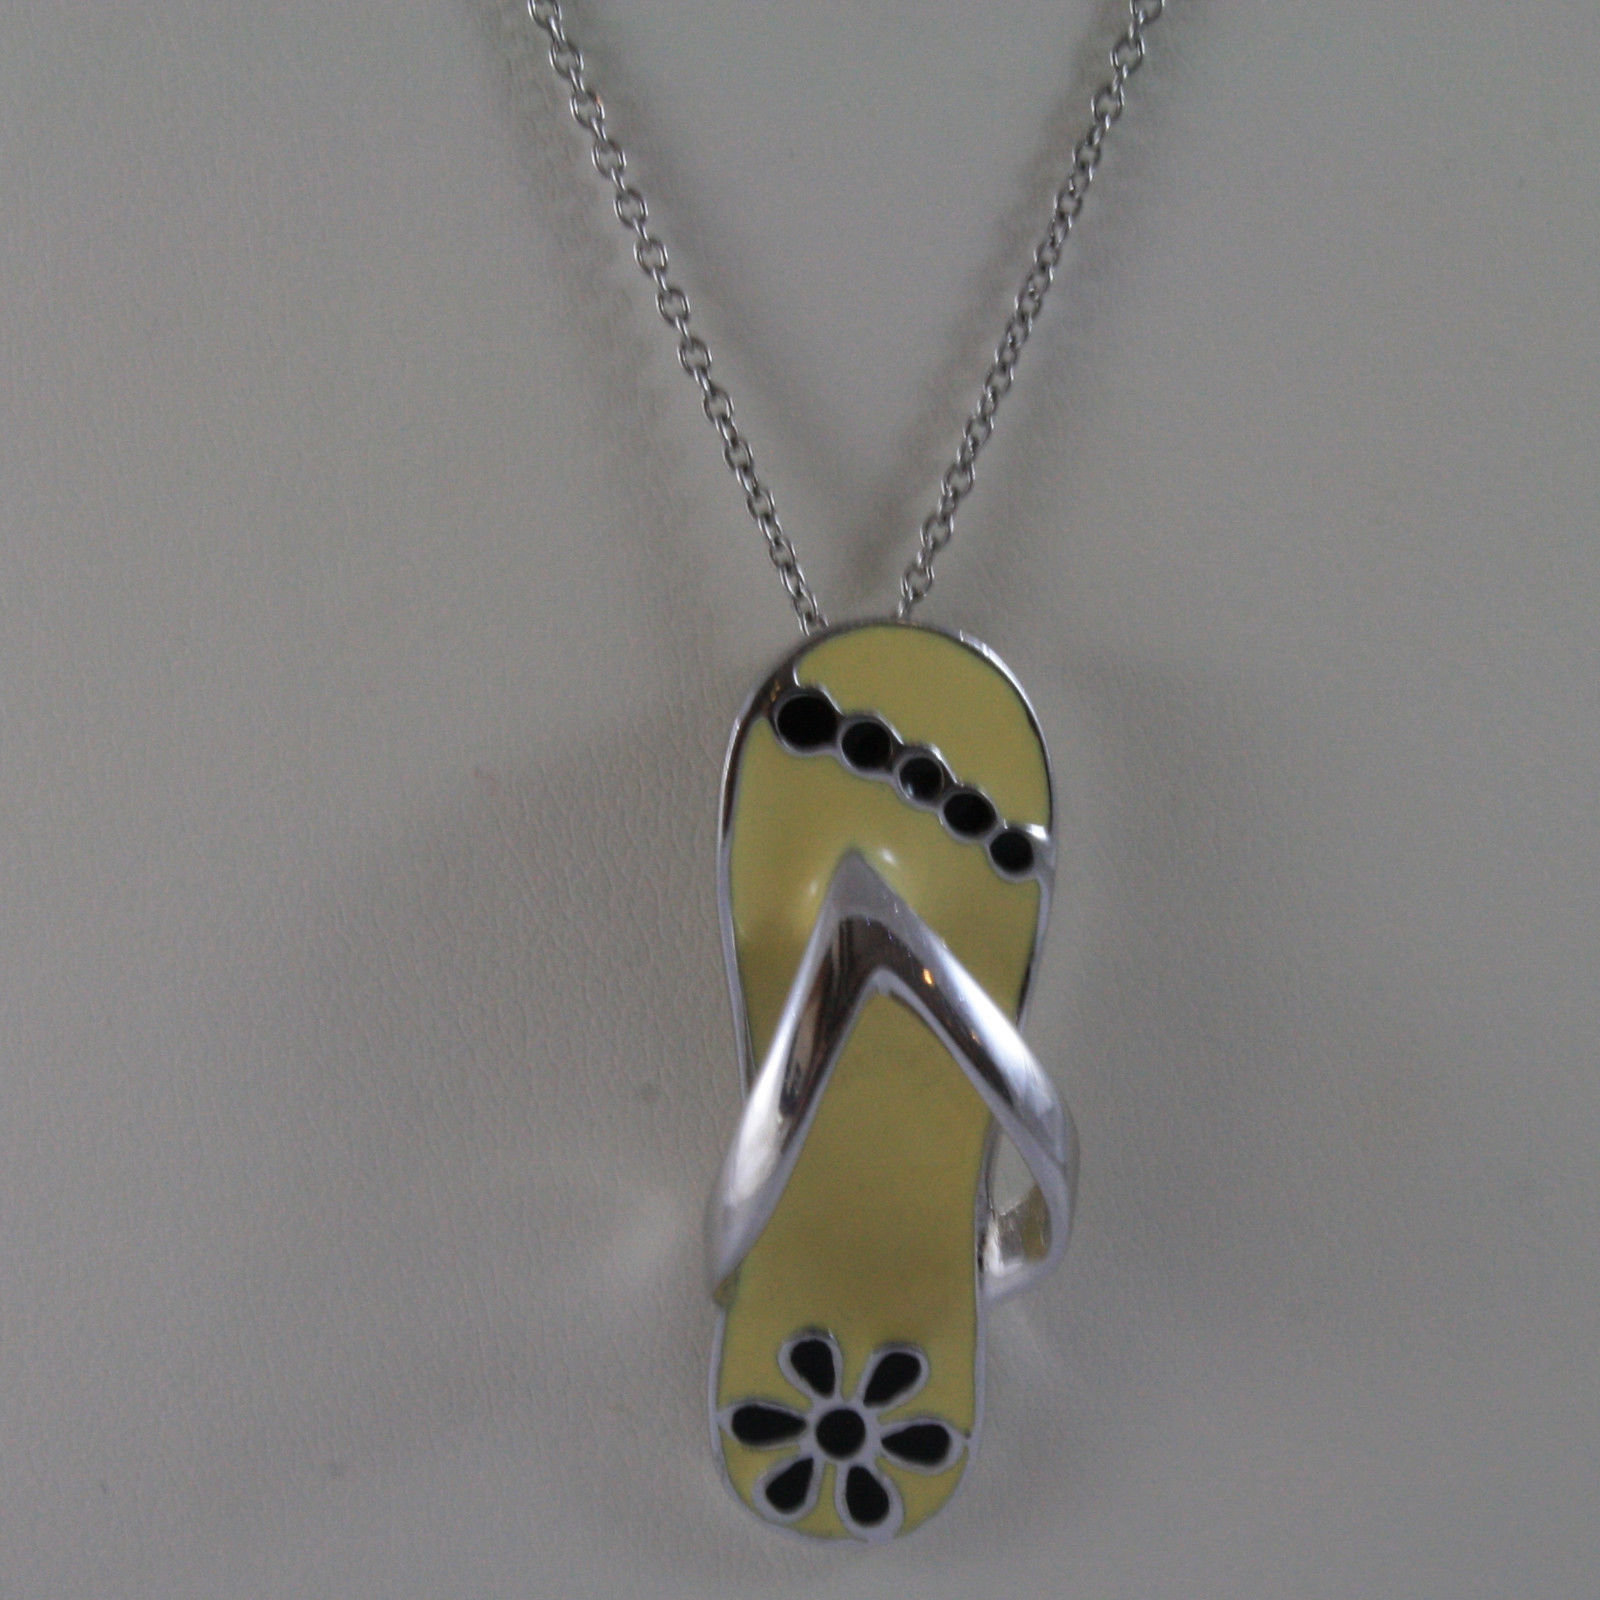 .925 SILVER RHODIUM NECKLACE WITH SHOE GLAZED PENDANT.